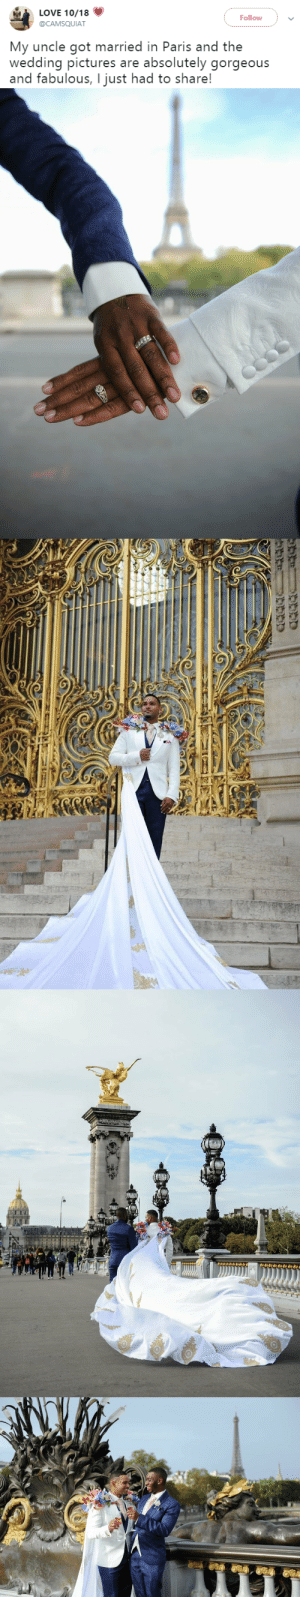 tooiconic:  niggazinmoscow: Perfectly gay ❤️  That is the most amazing wedding tux alteration I have ever seen.  : tooiconic:  niggazinmoscow: Perfectly gay ❤️  That is the most amazing wedding tux alteration I have ever seen.